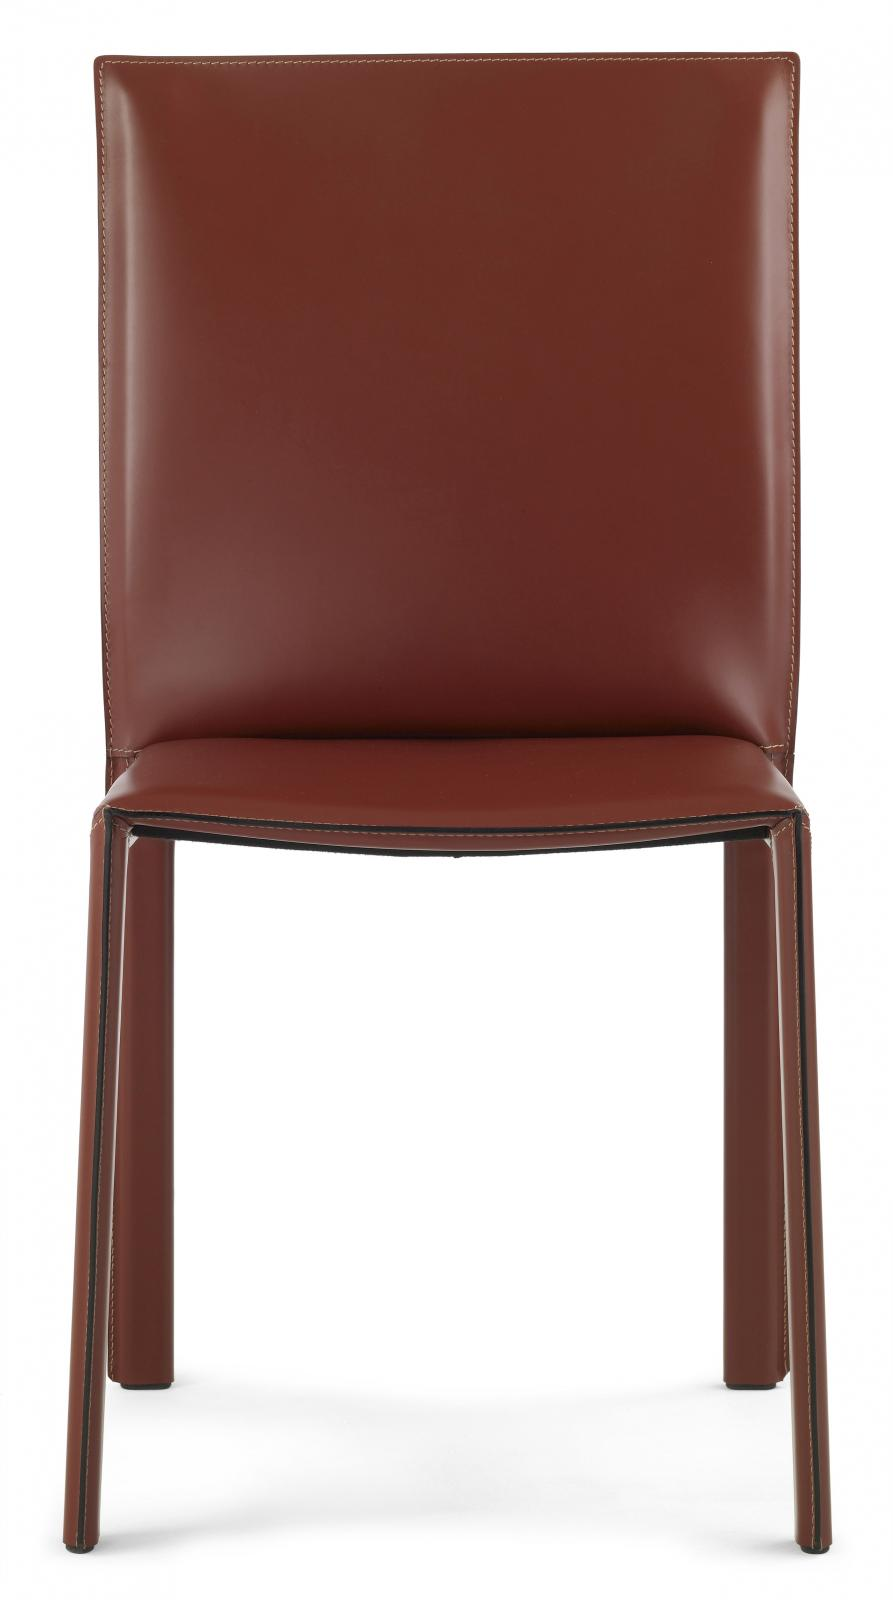 MDC 108 Modern Dining Chairs